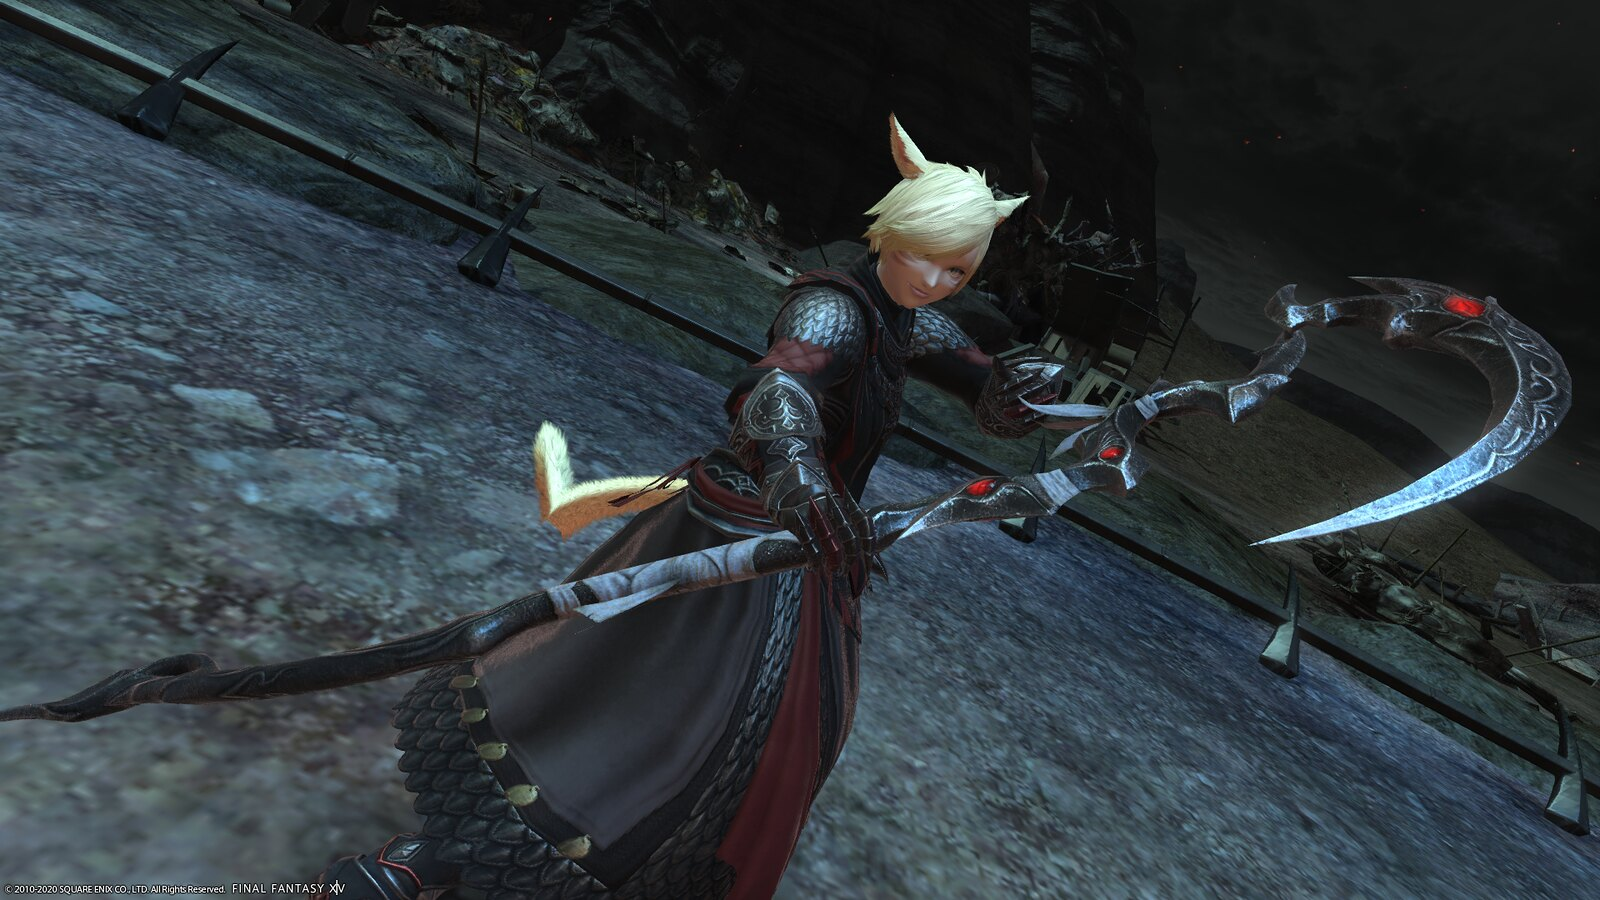 Final Fantasy XIV: Shadowbringers - Ruby Weapon gear on PS4